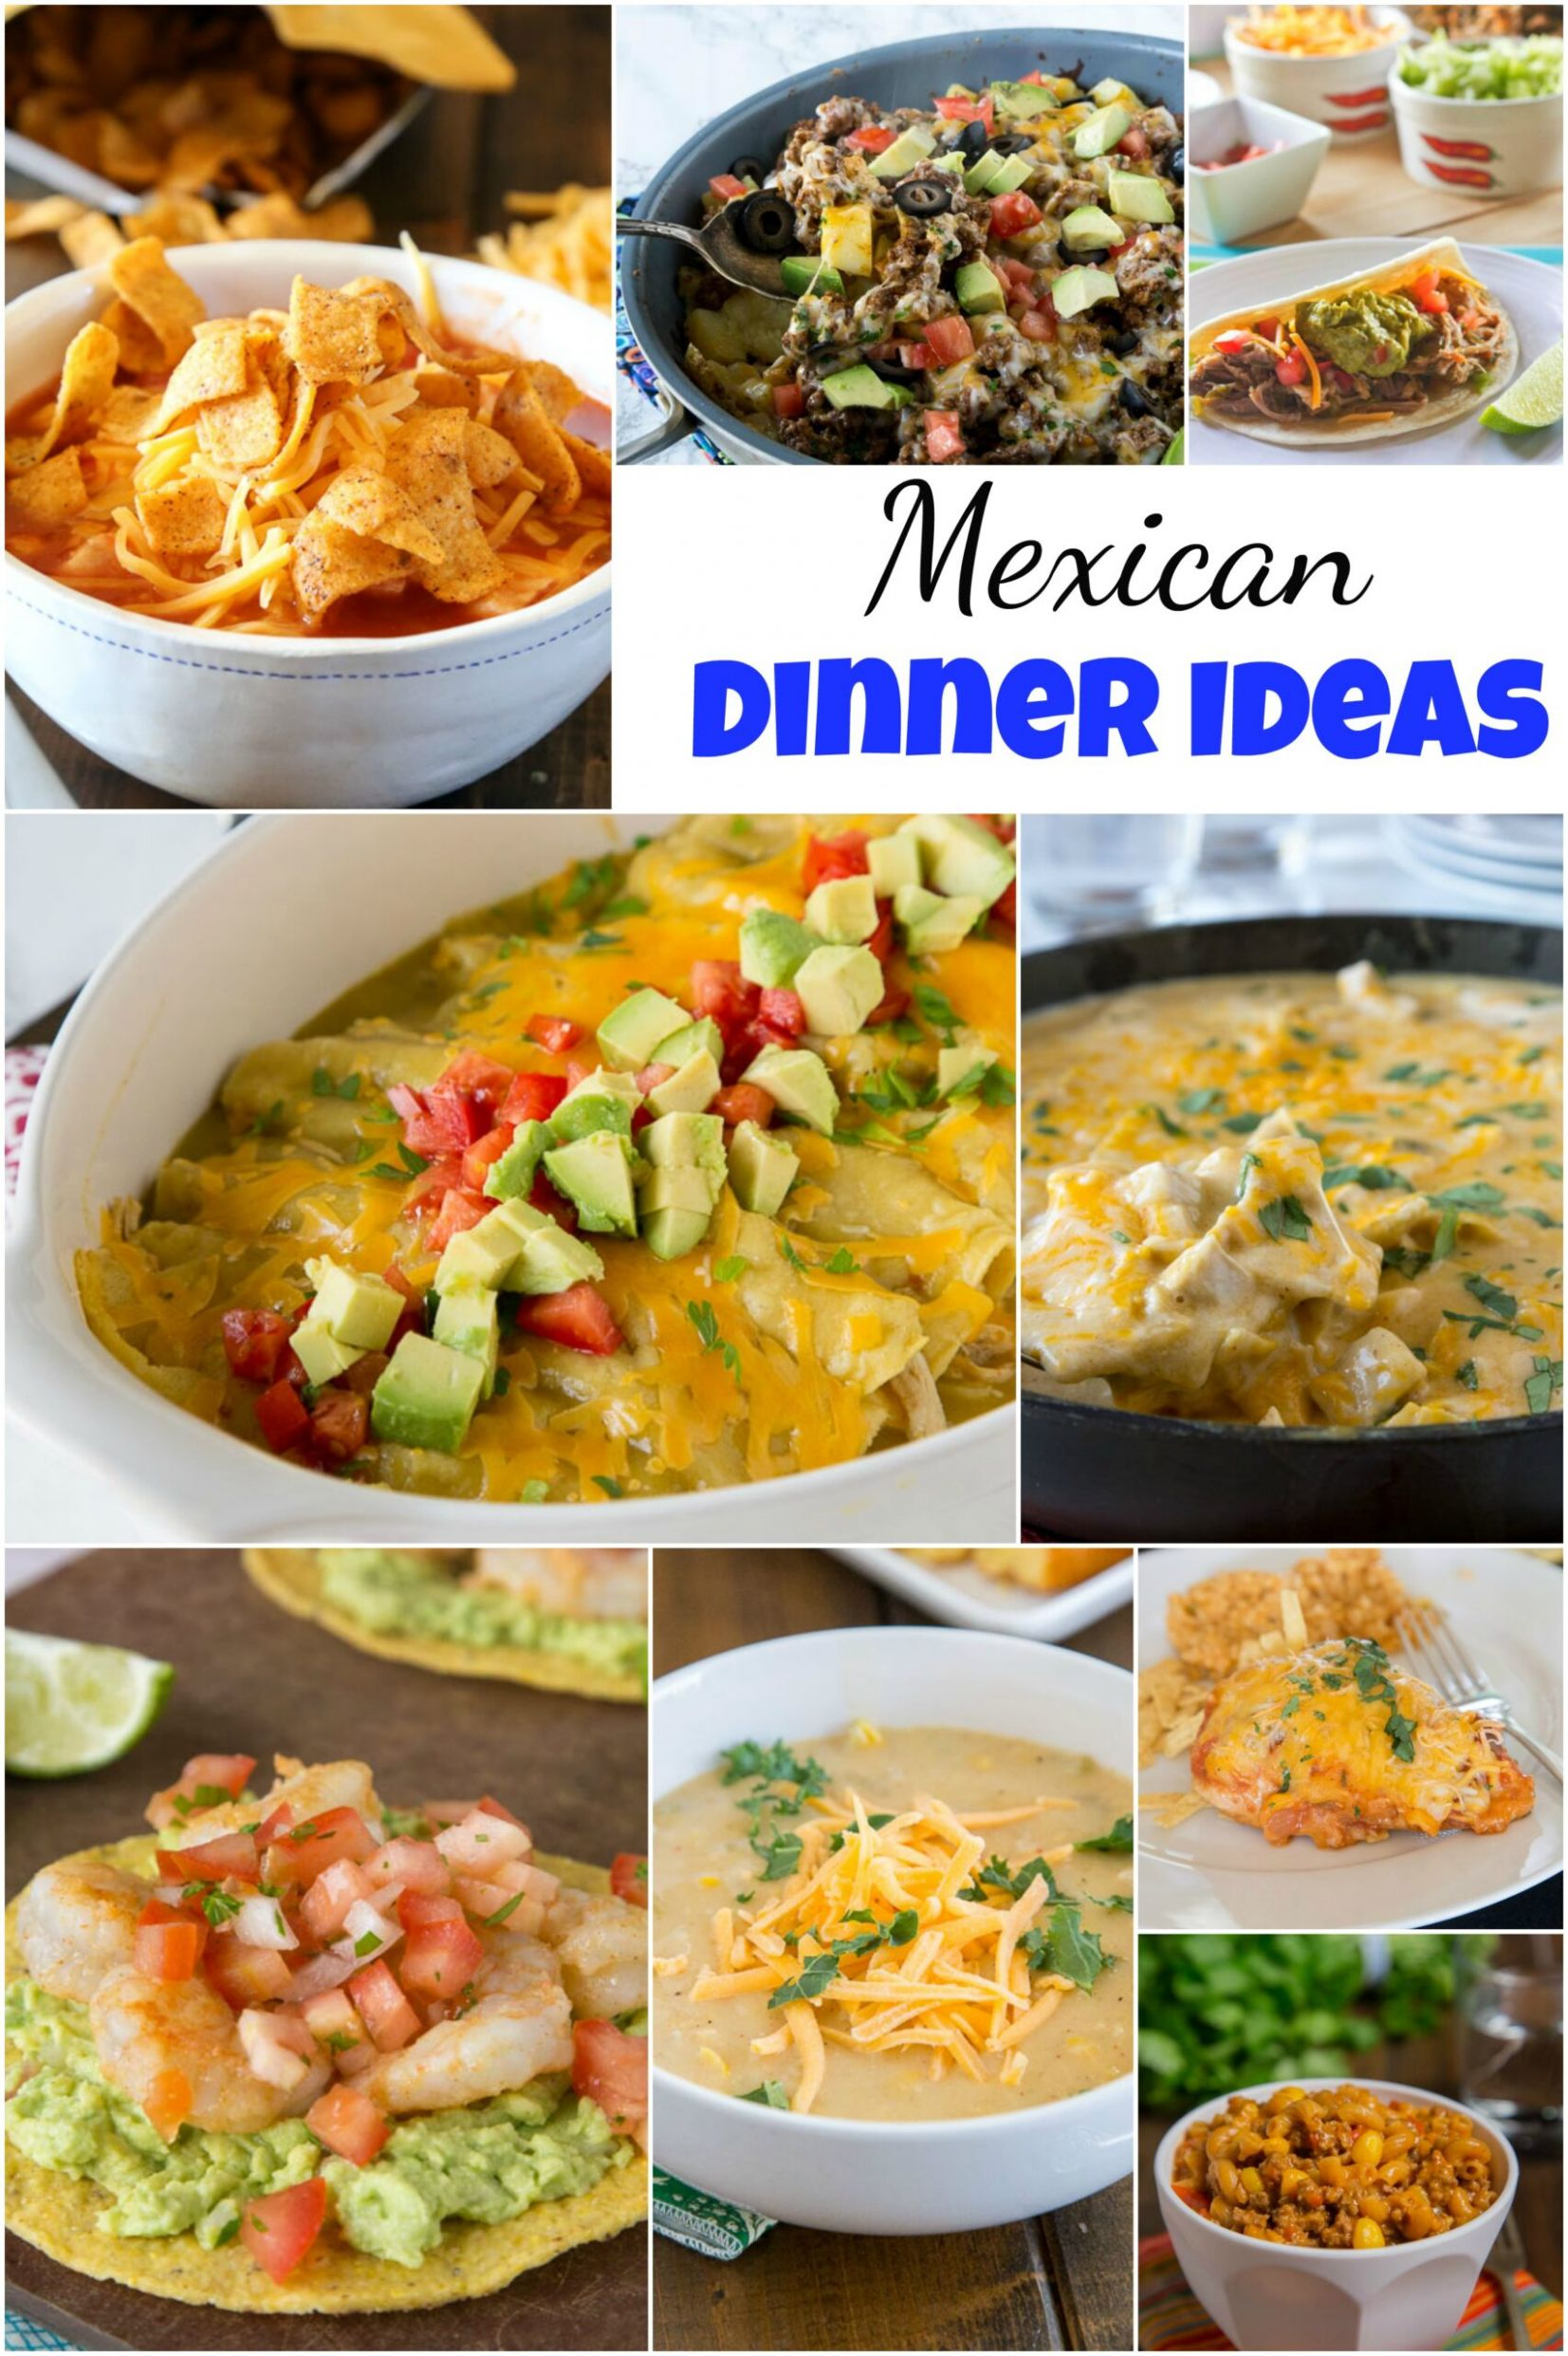 9+ Mexican Dinner Ideas - Dinners, Dishes, and Desserts